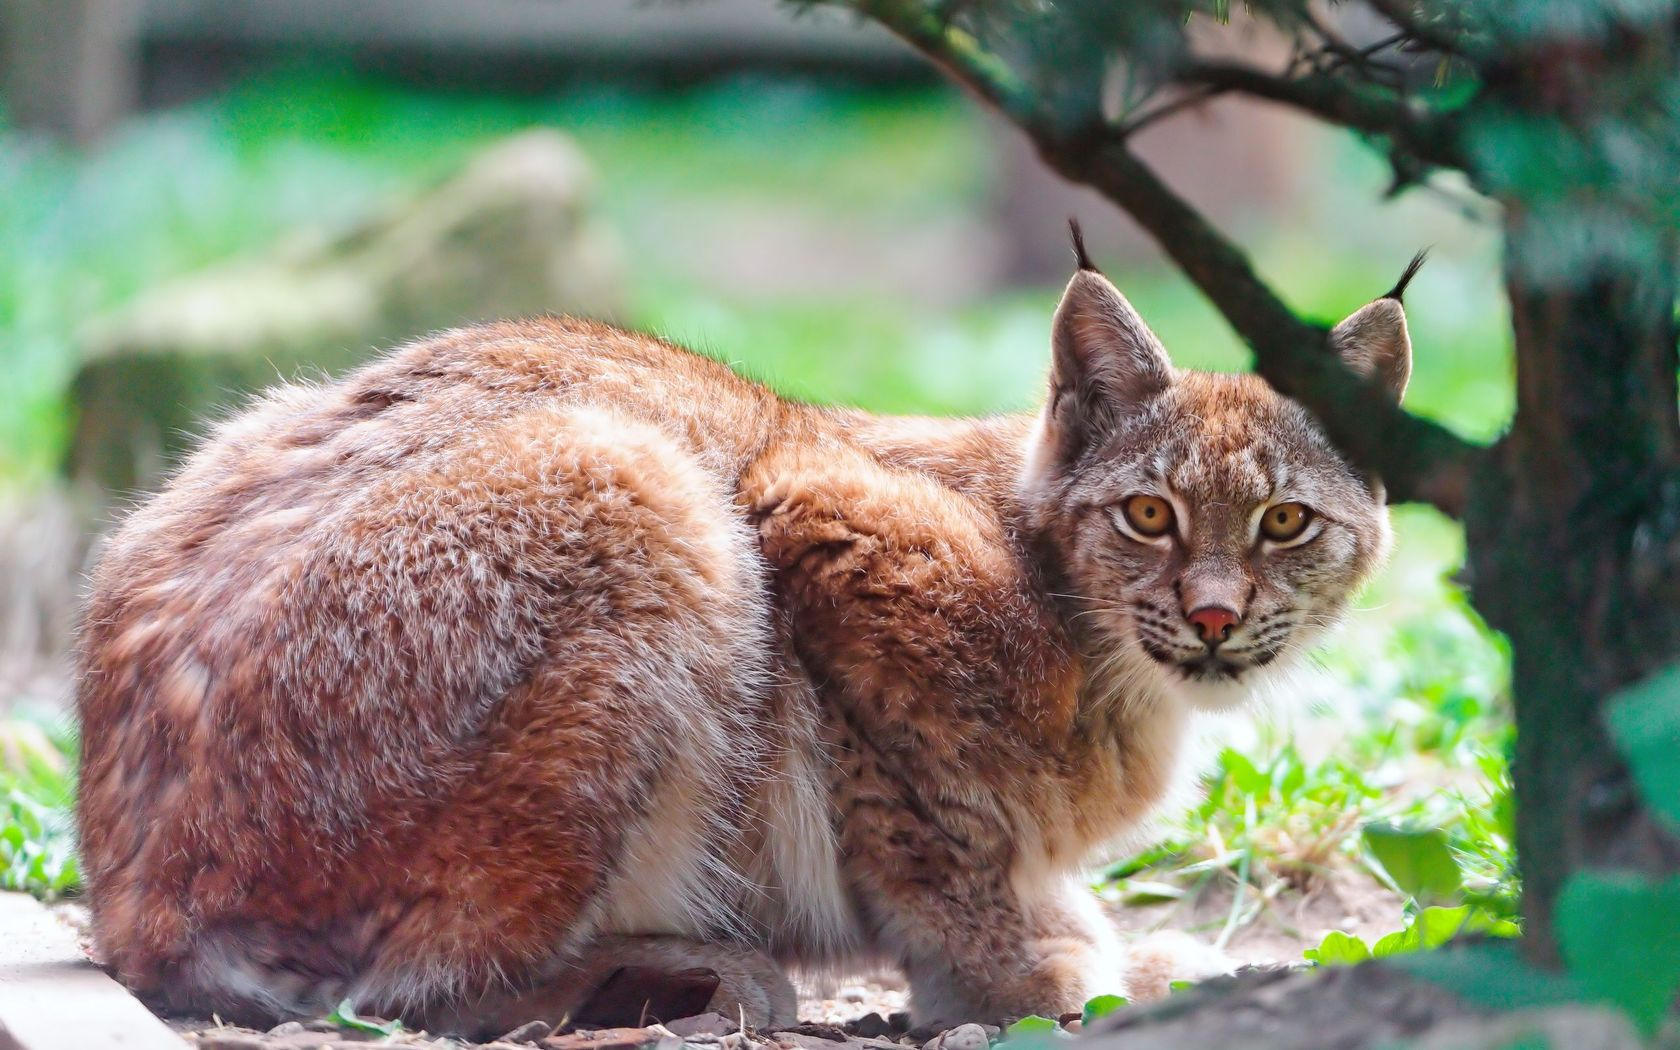 32194 download wallpaper Animals, Bobcats screensavers and pictures for free